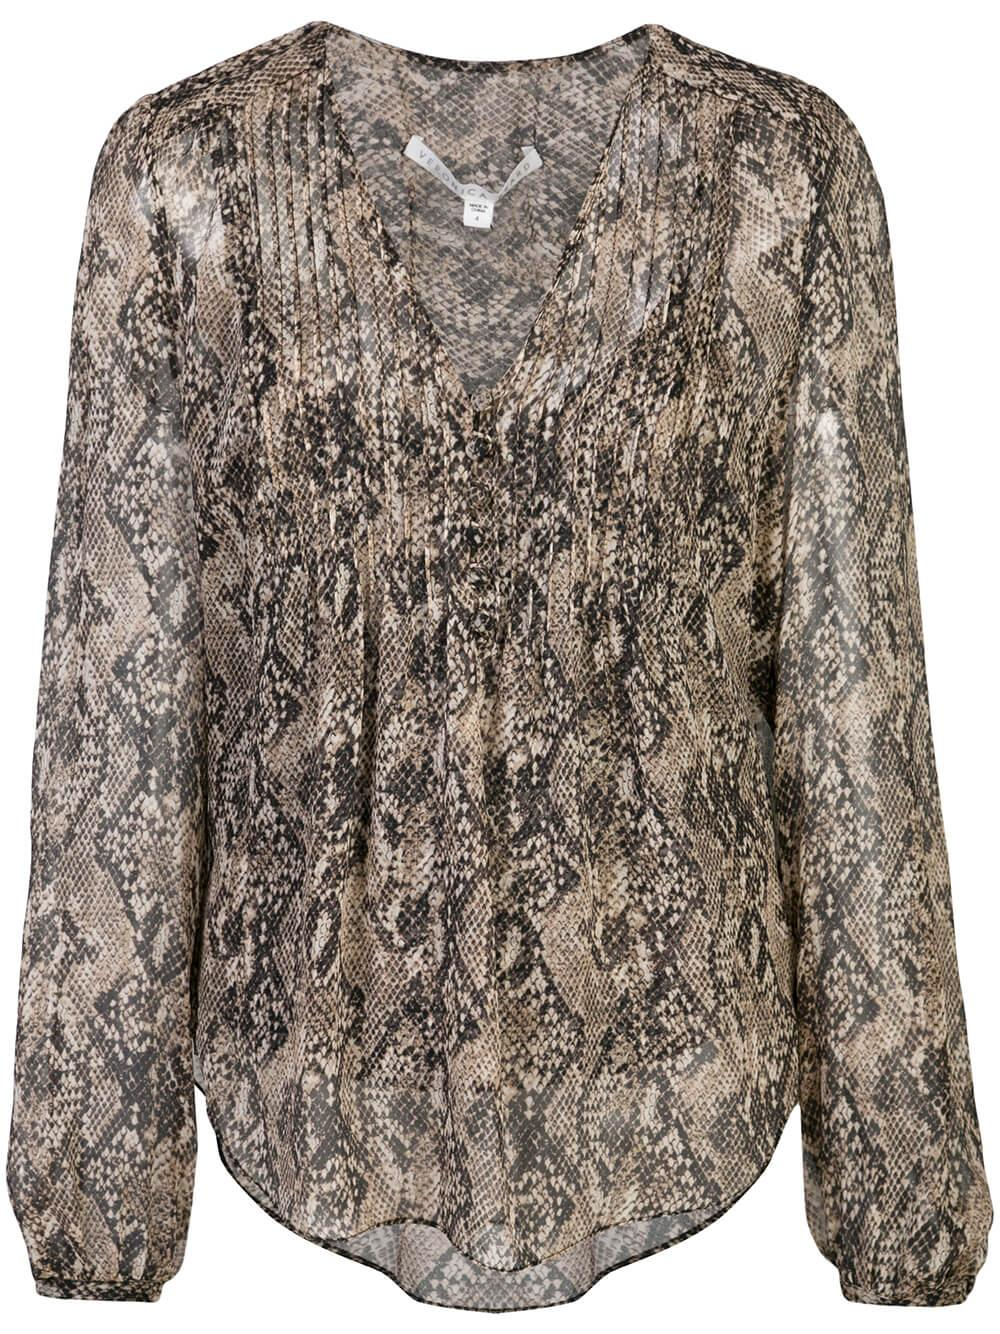 Lowell Long Sleeve V-Neck Python Print Blouse